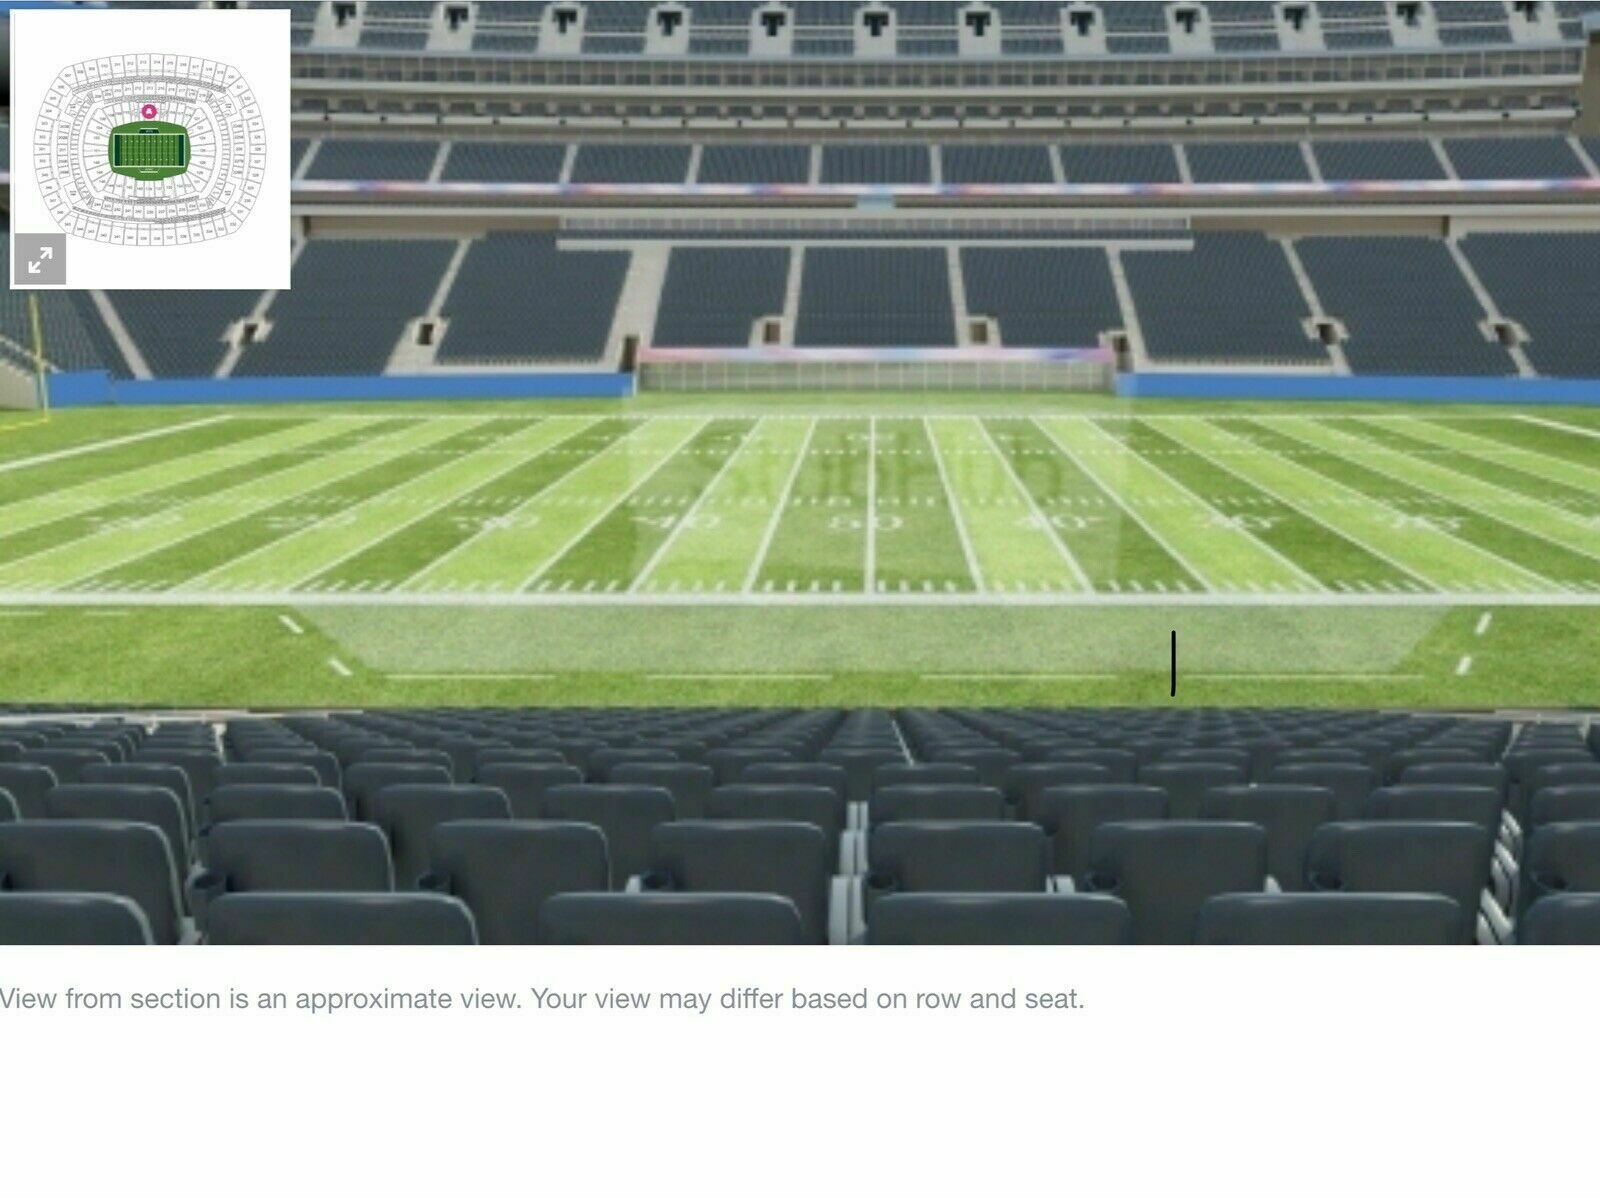 2 New York Jets PSL's For Sale Coaches Club Sec 113 Row 16 Season Ticket Rights.